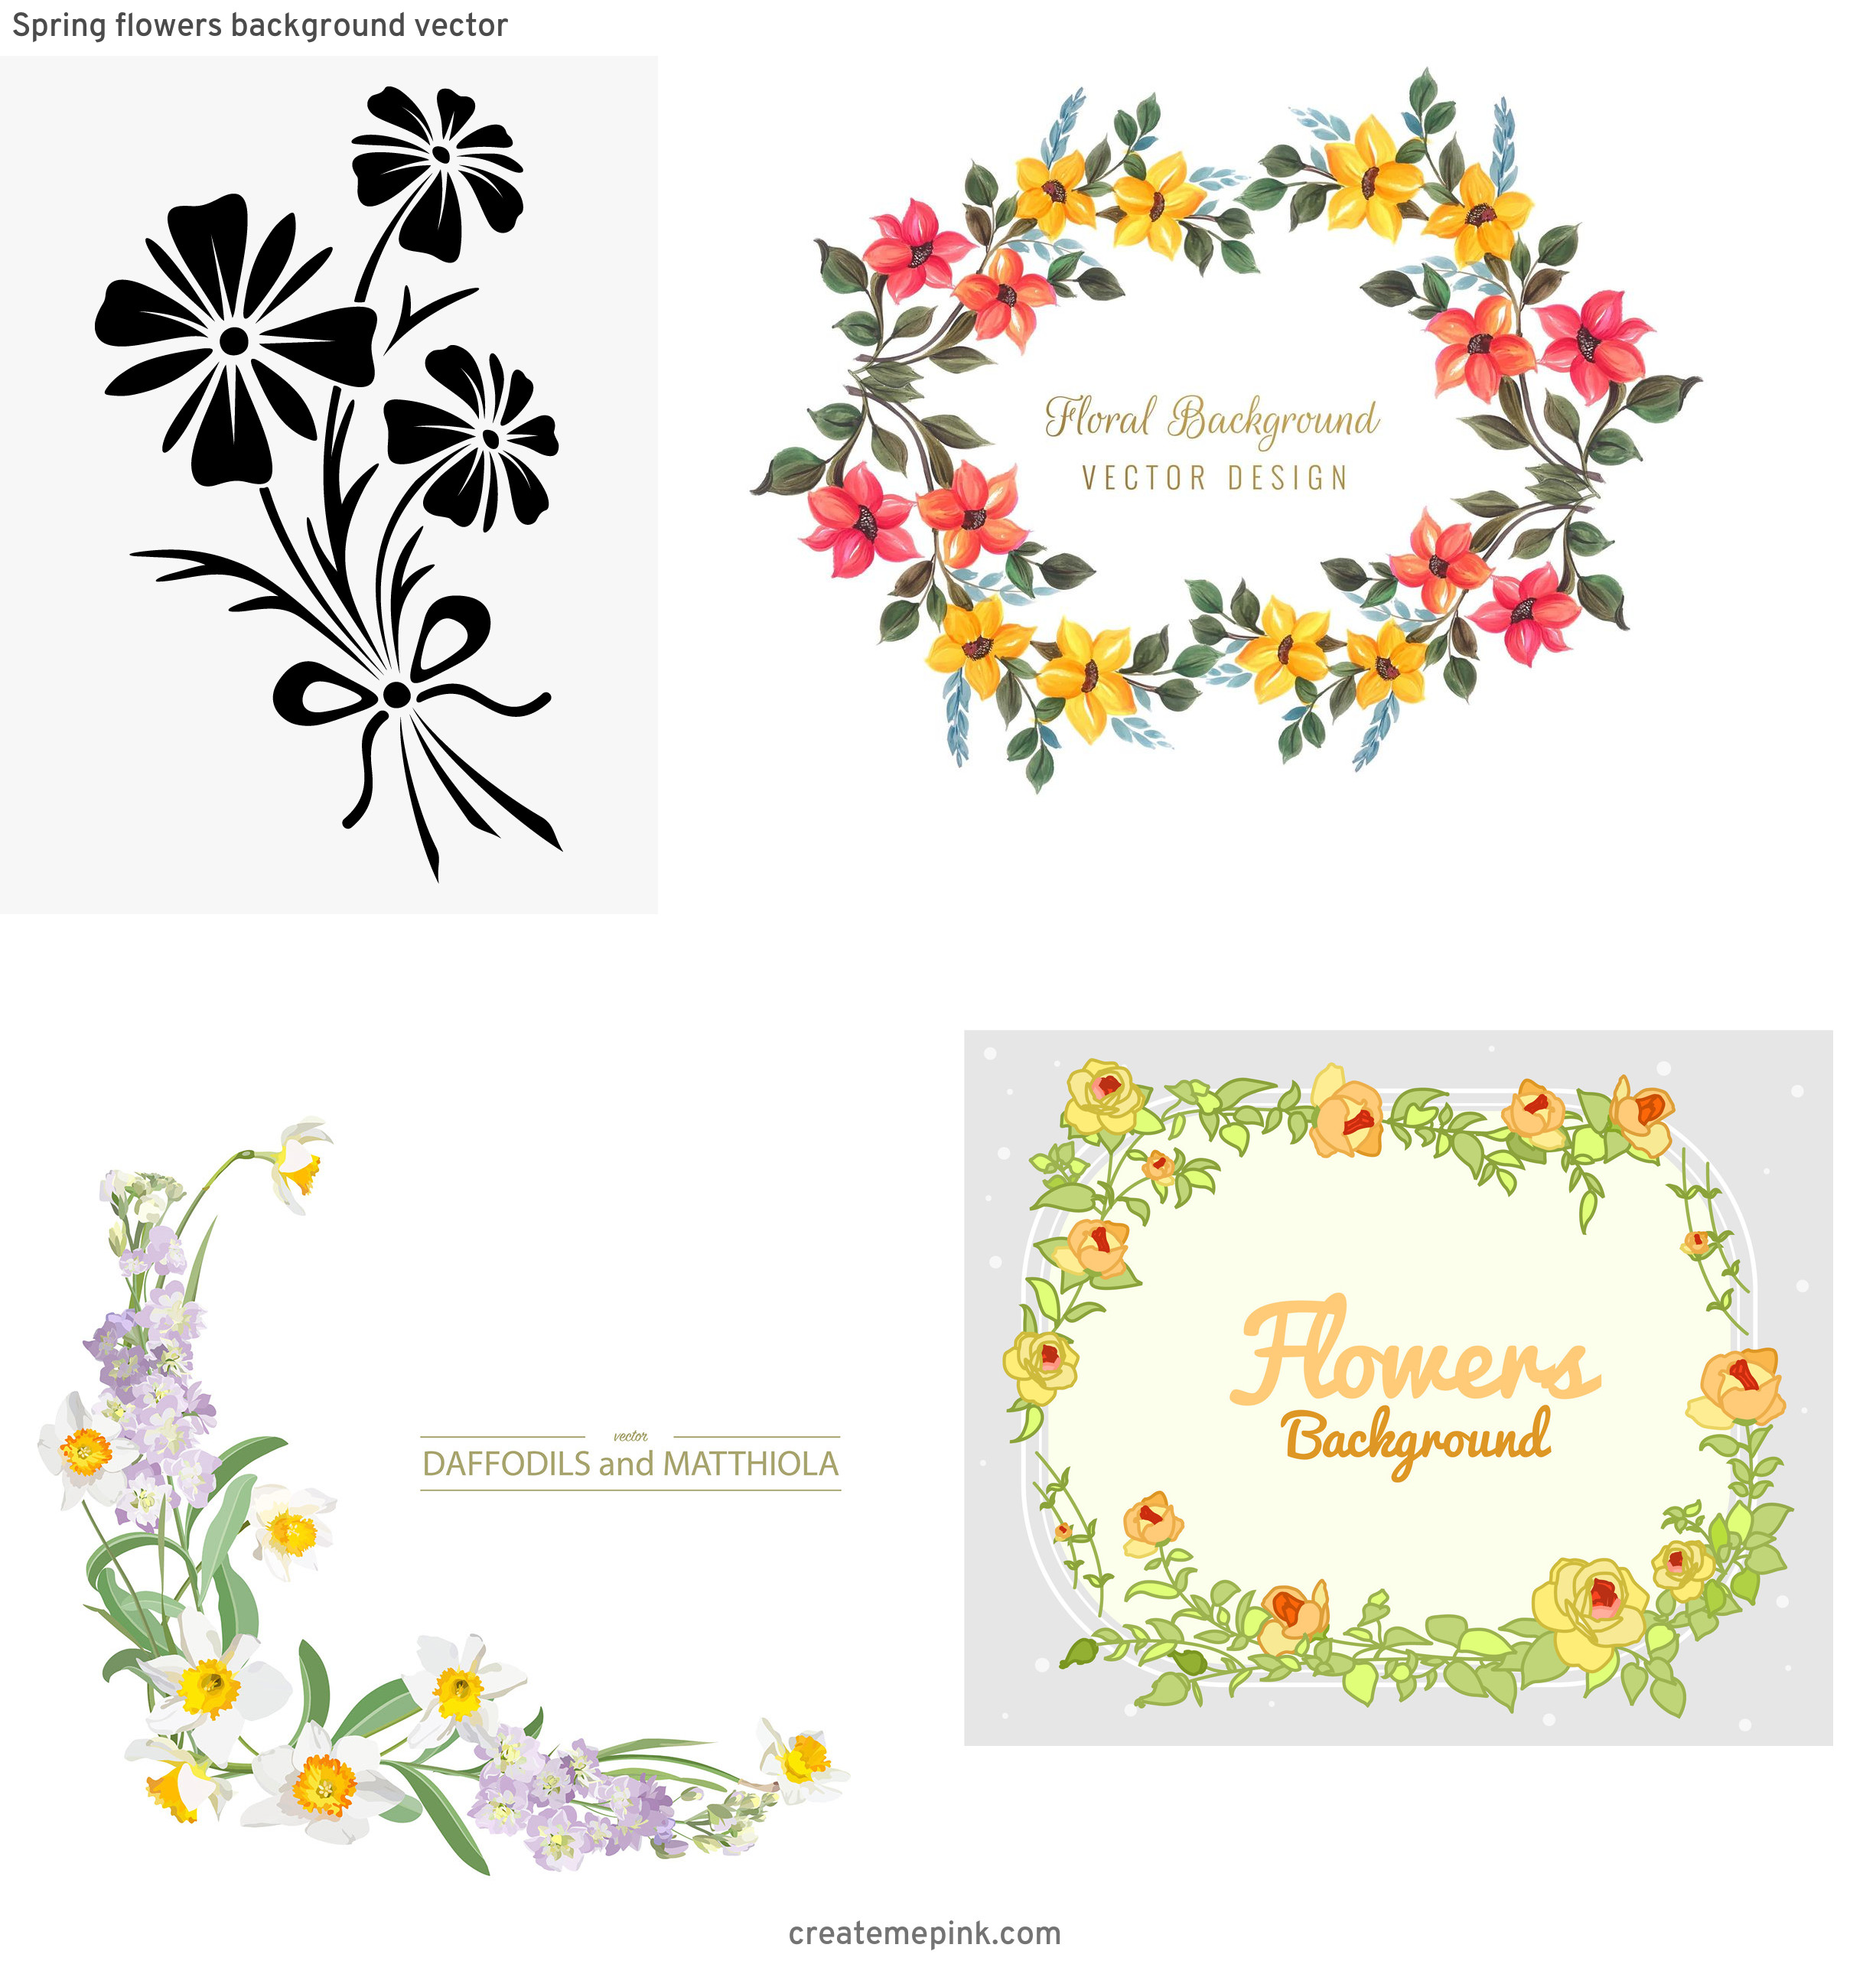 Vector Graphics Floral: Spring Flowers Background Vector